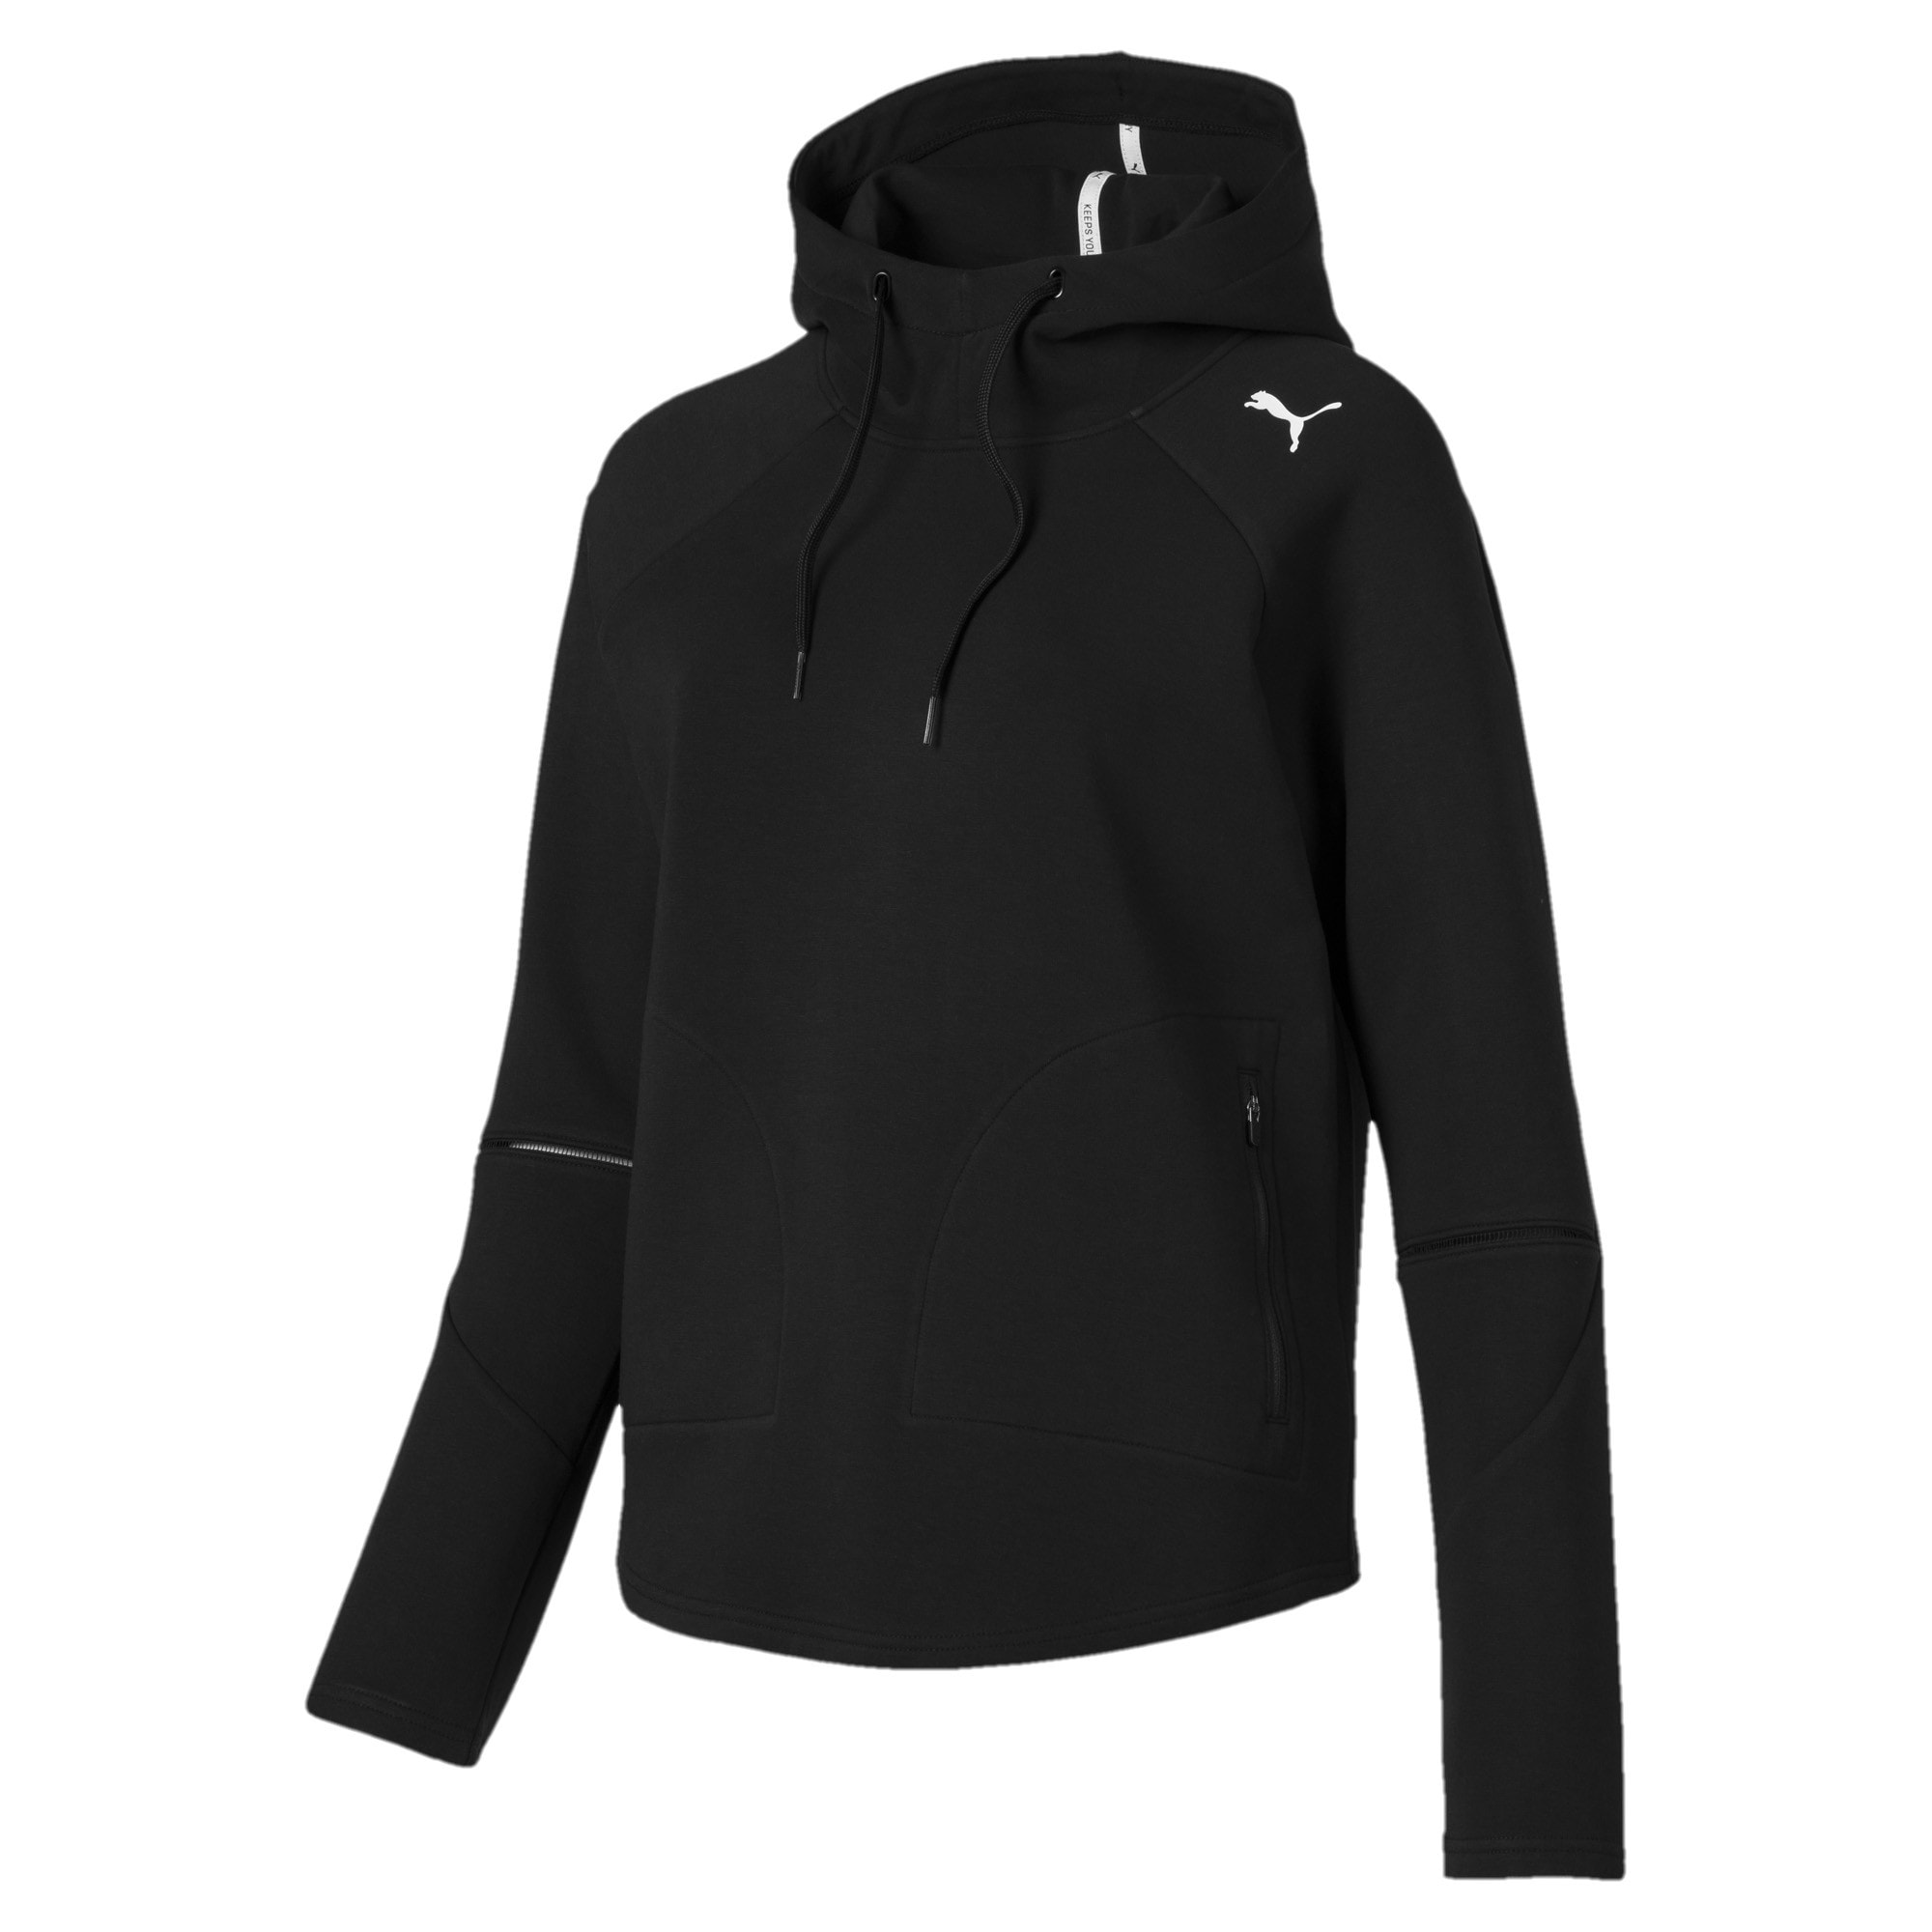 Evostripe Move Women's Hoodie, Puma Black, large